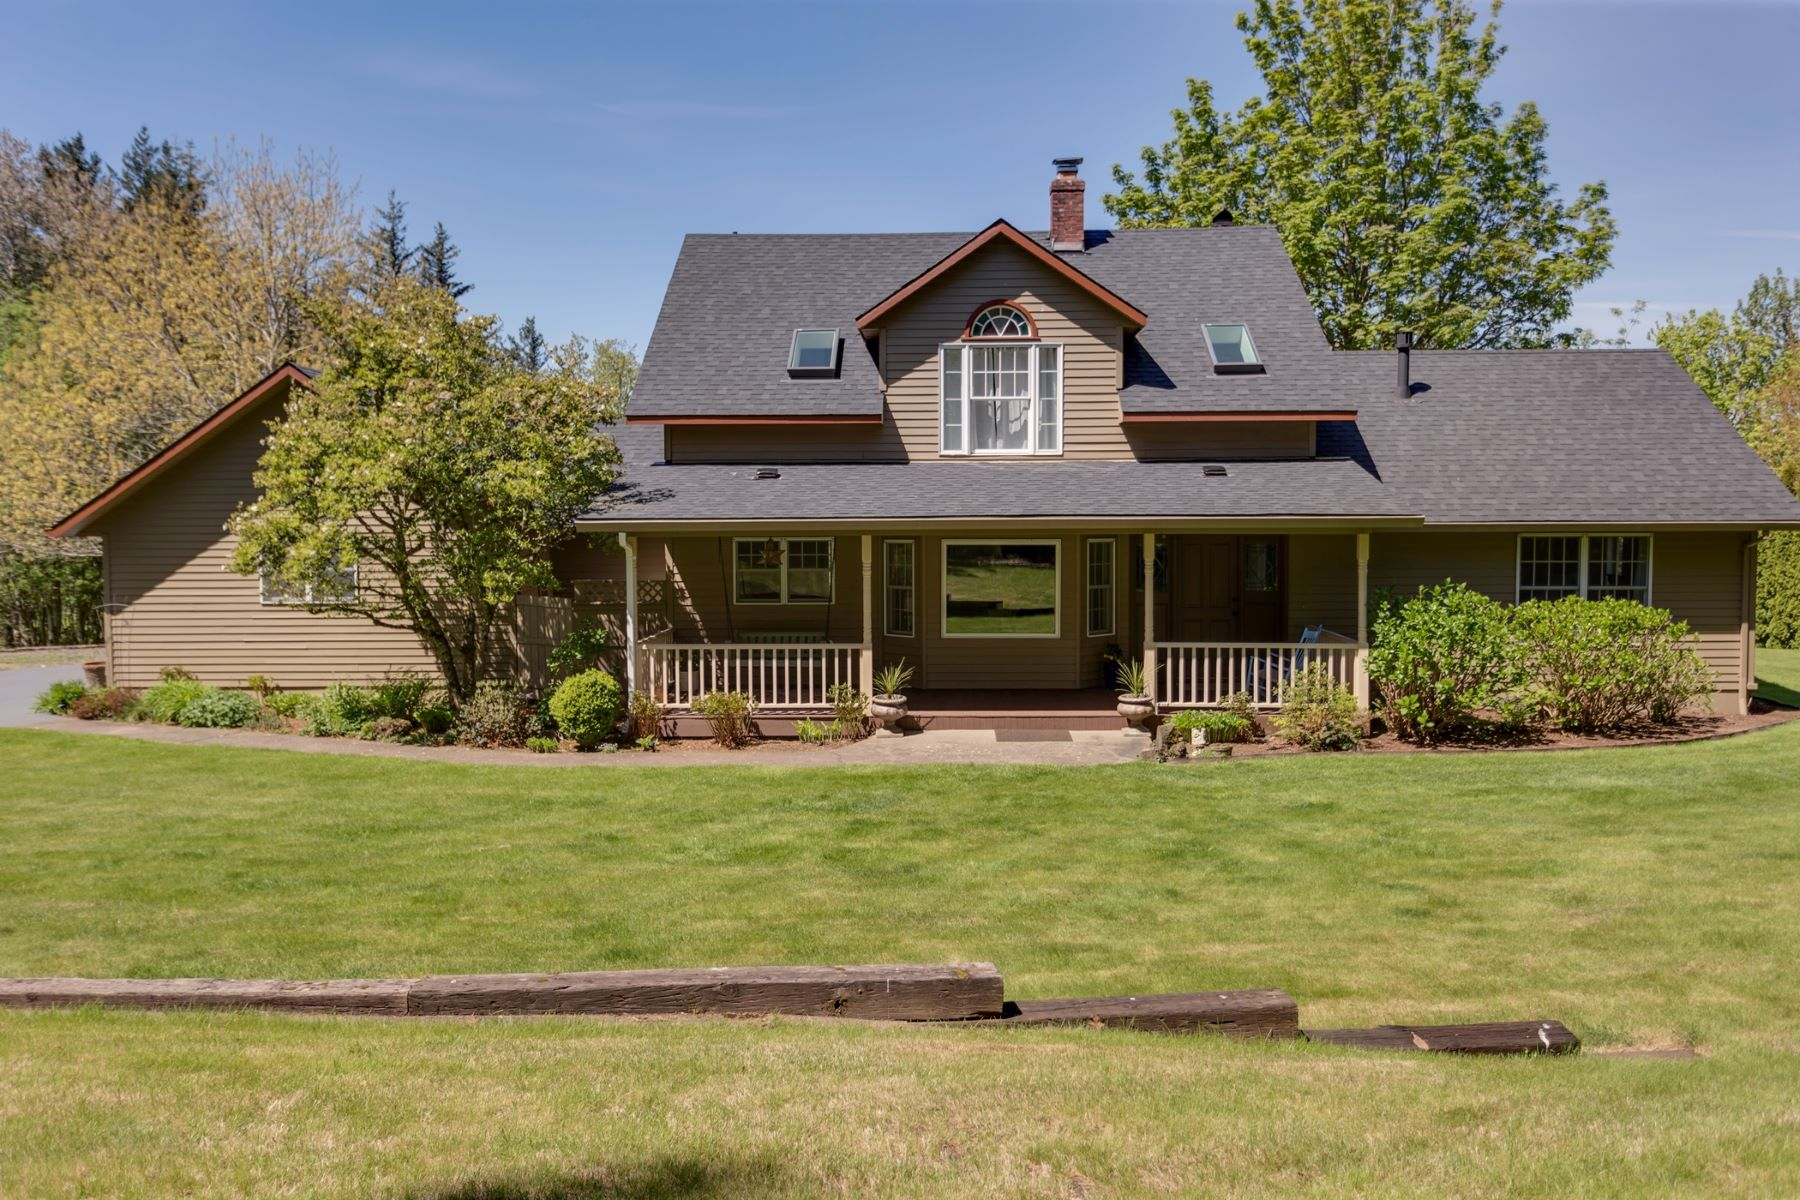 Single Family Homes for Active at 1365 NE CRESTVIEW LN Corbett, Oregon 97019 United States